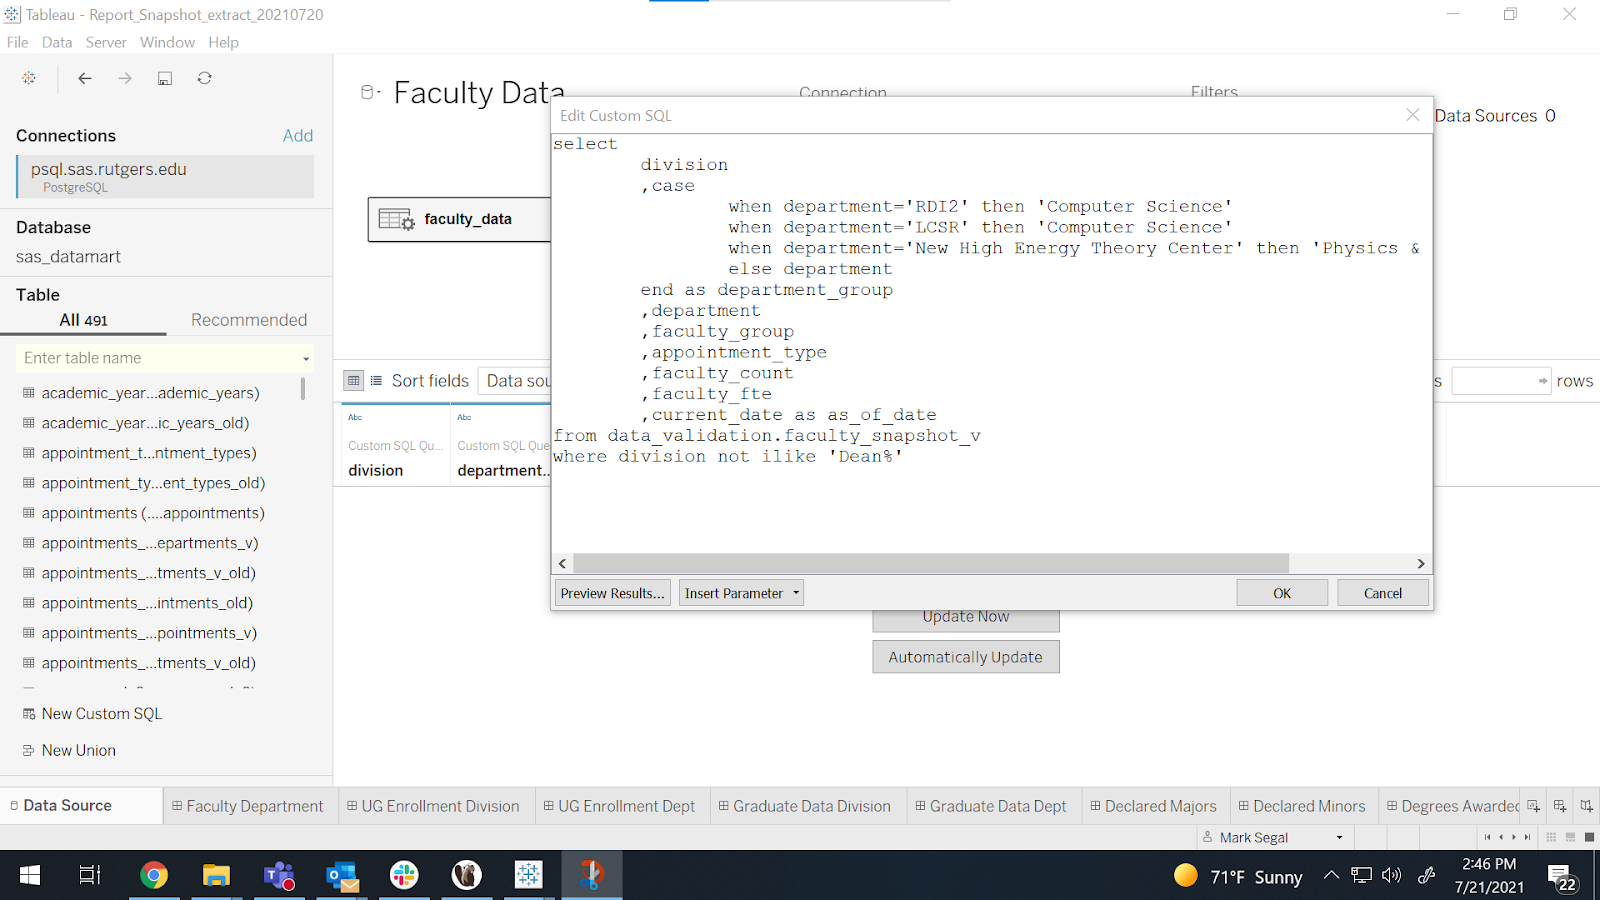 Custom SQL option is selected in this screenshot